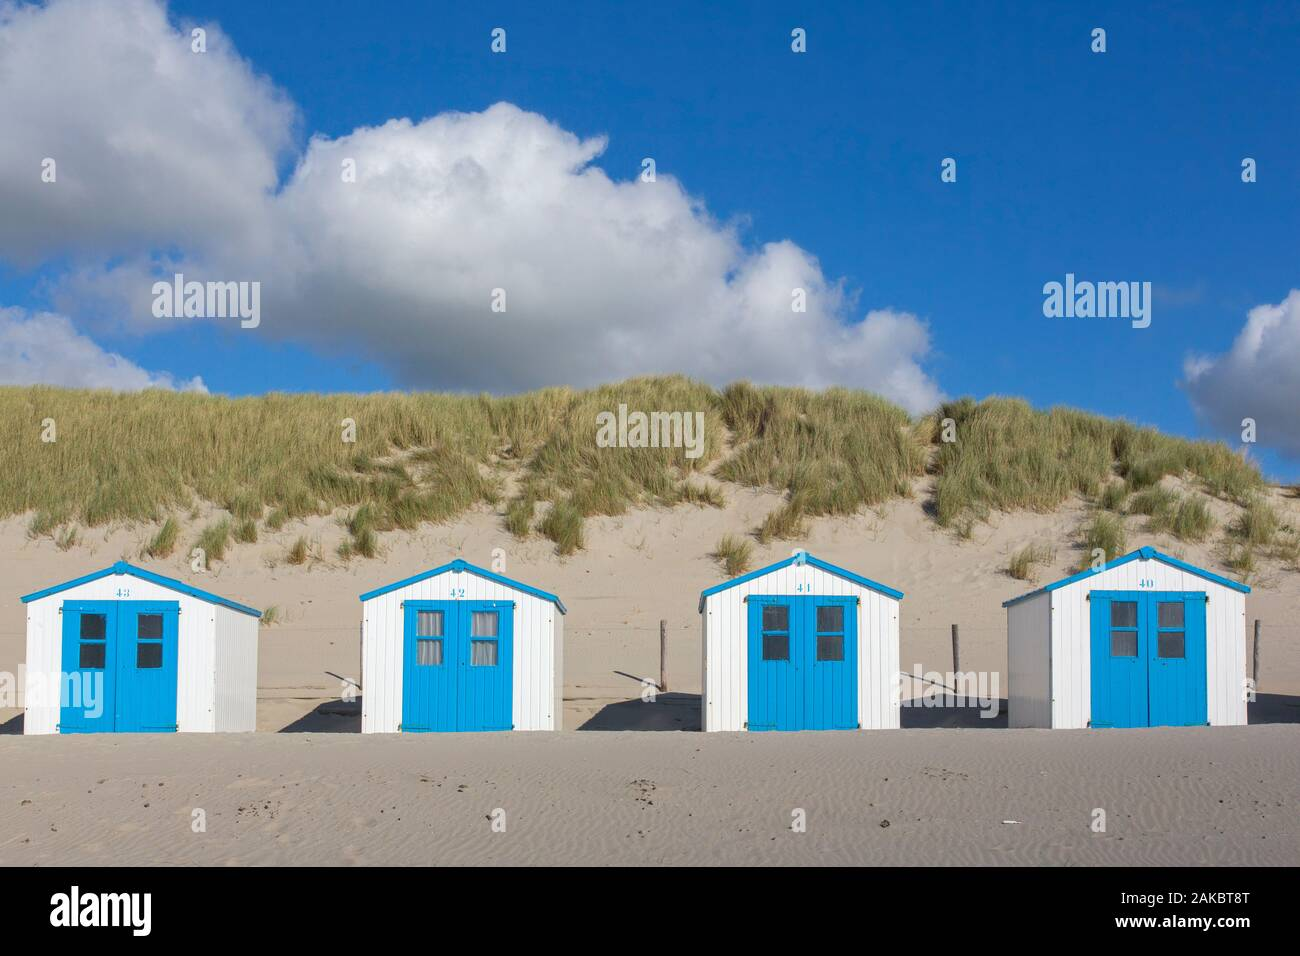 Row of blue and white beach cabins on Texel, West Frisian Island in the Wadden Sea, Noord-Holland, the Netherlands Stock Photo